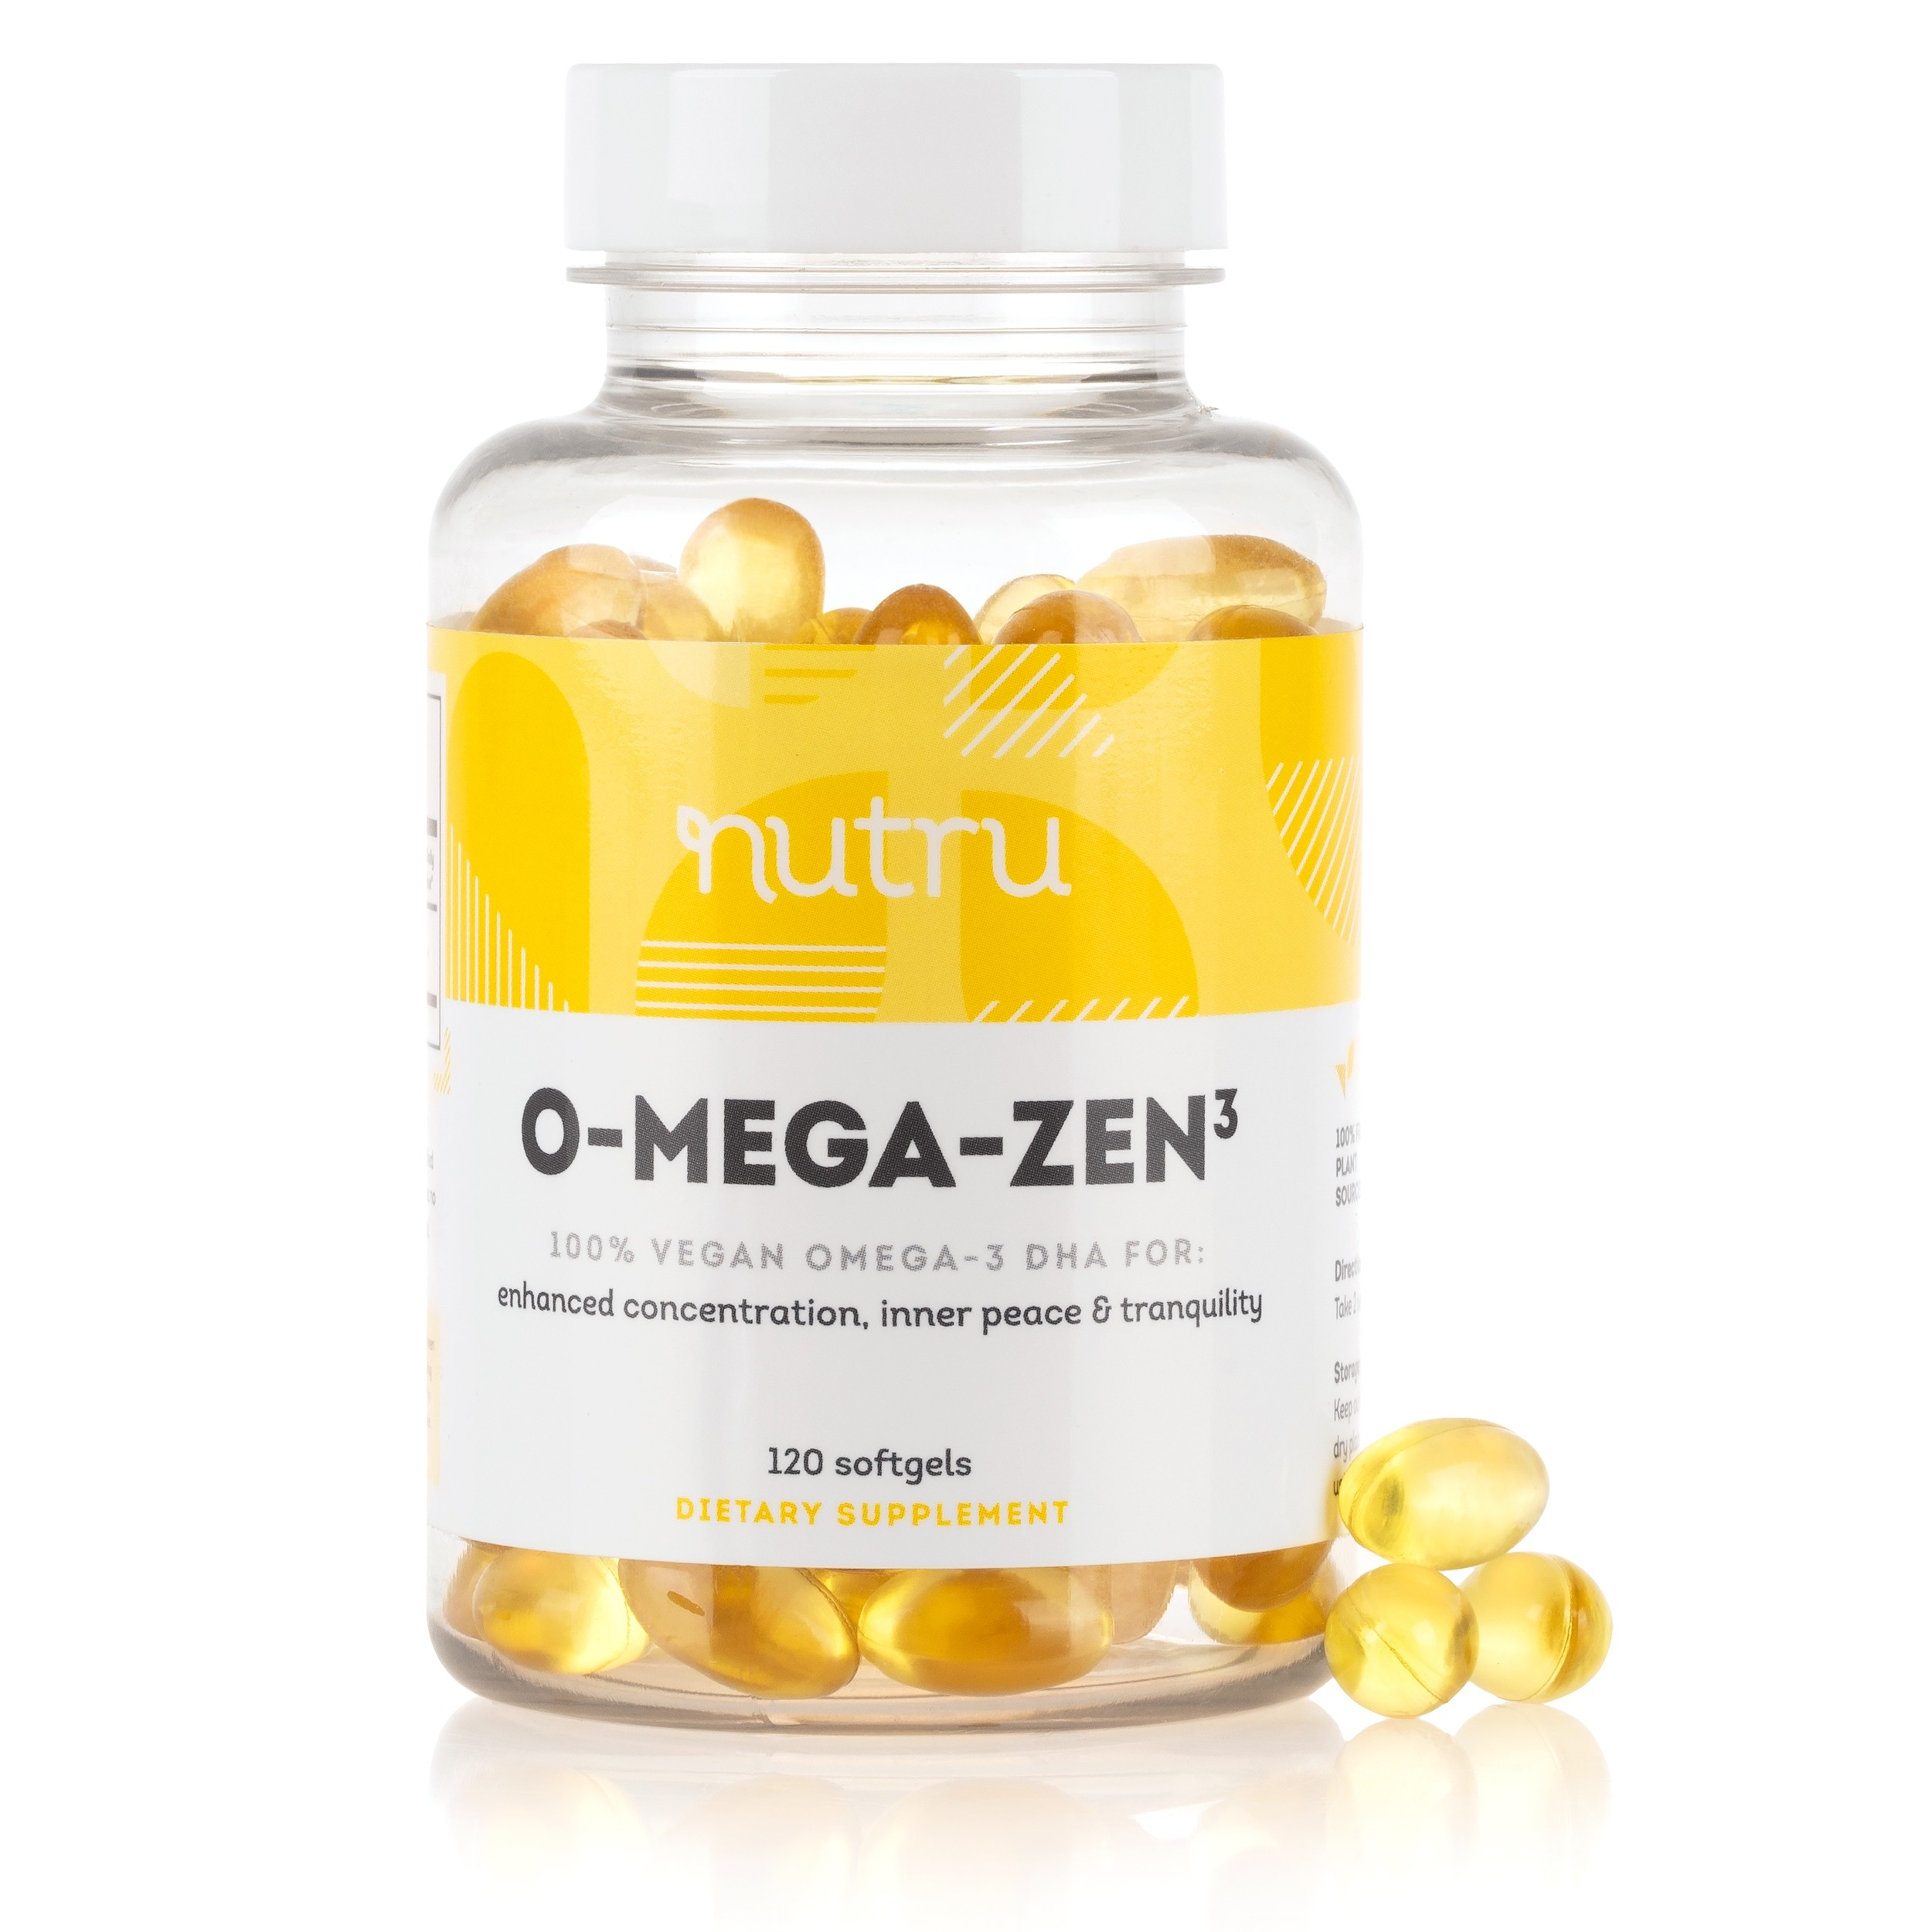 O Mega Zen3 Omega 3 Dha 300 Mg 40 Vegicaps Natural Plant Source Concentrated Omega 3 Dha Formula Dr Cousens Global Expert S Choice Supplements Herbs Superfoods Low Cost International Shipping